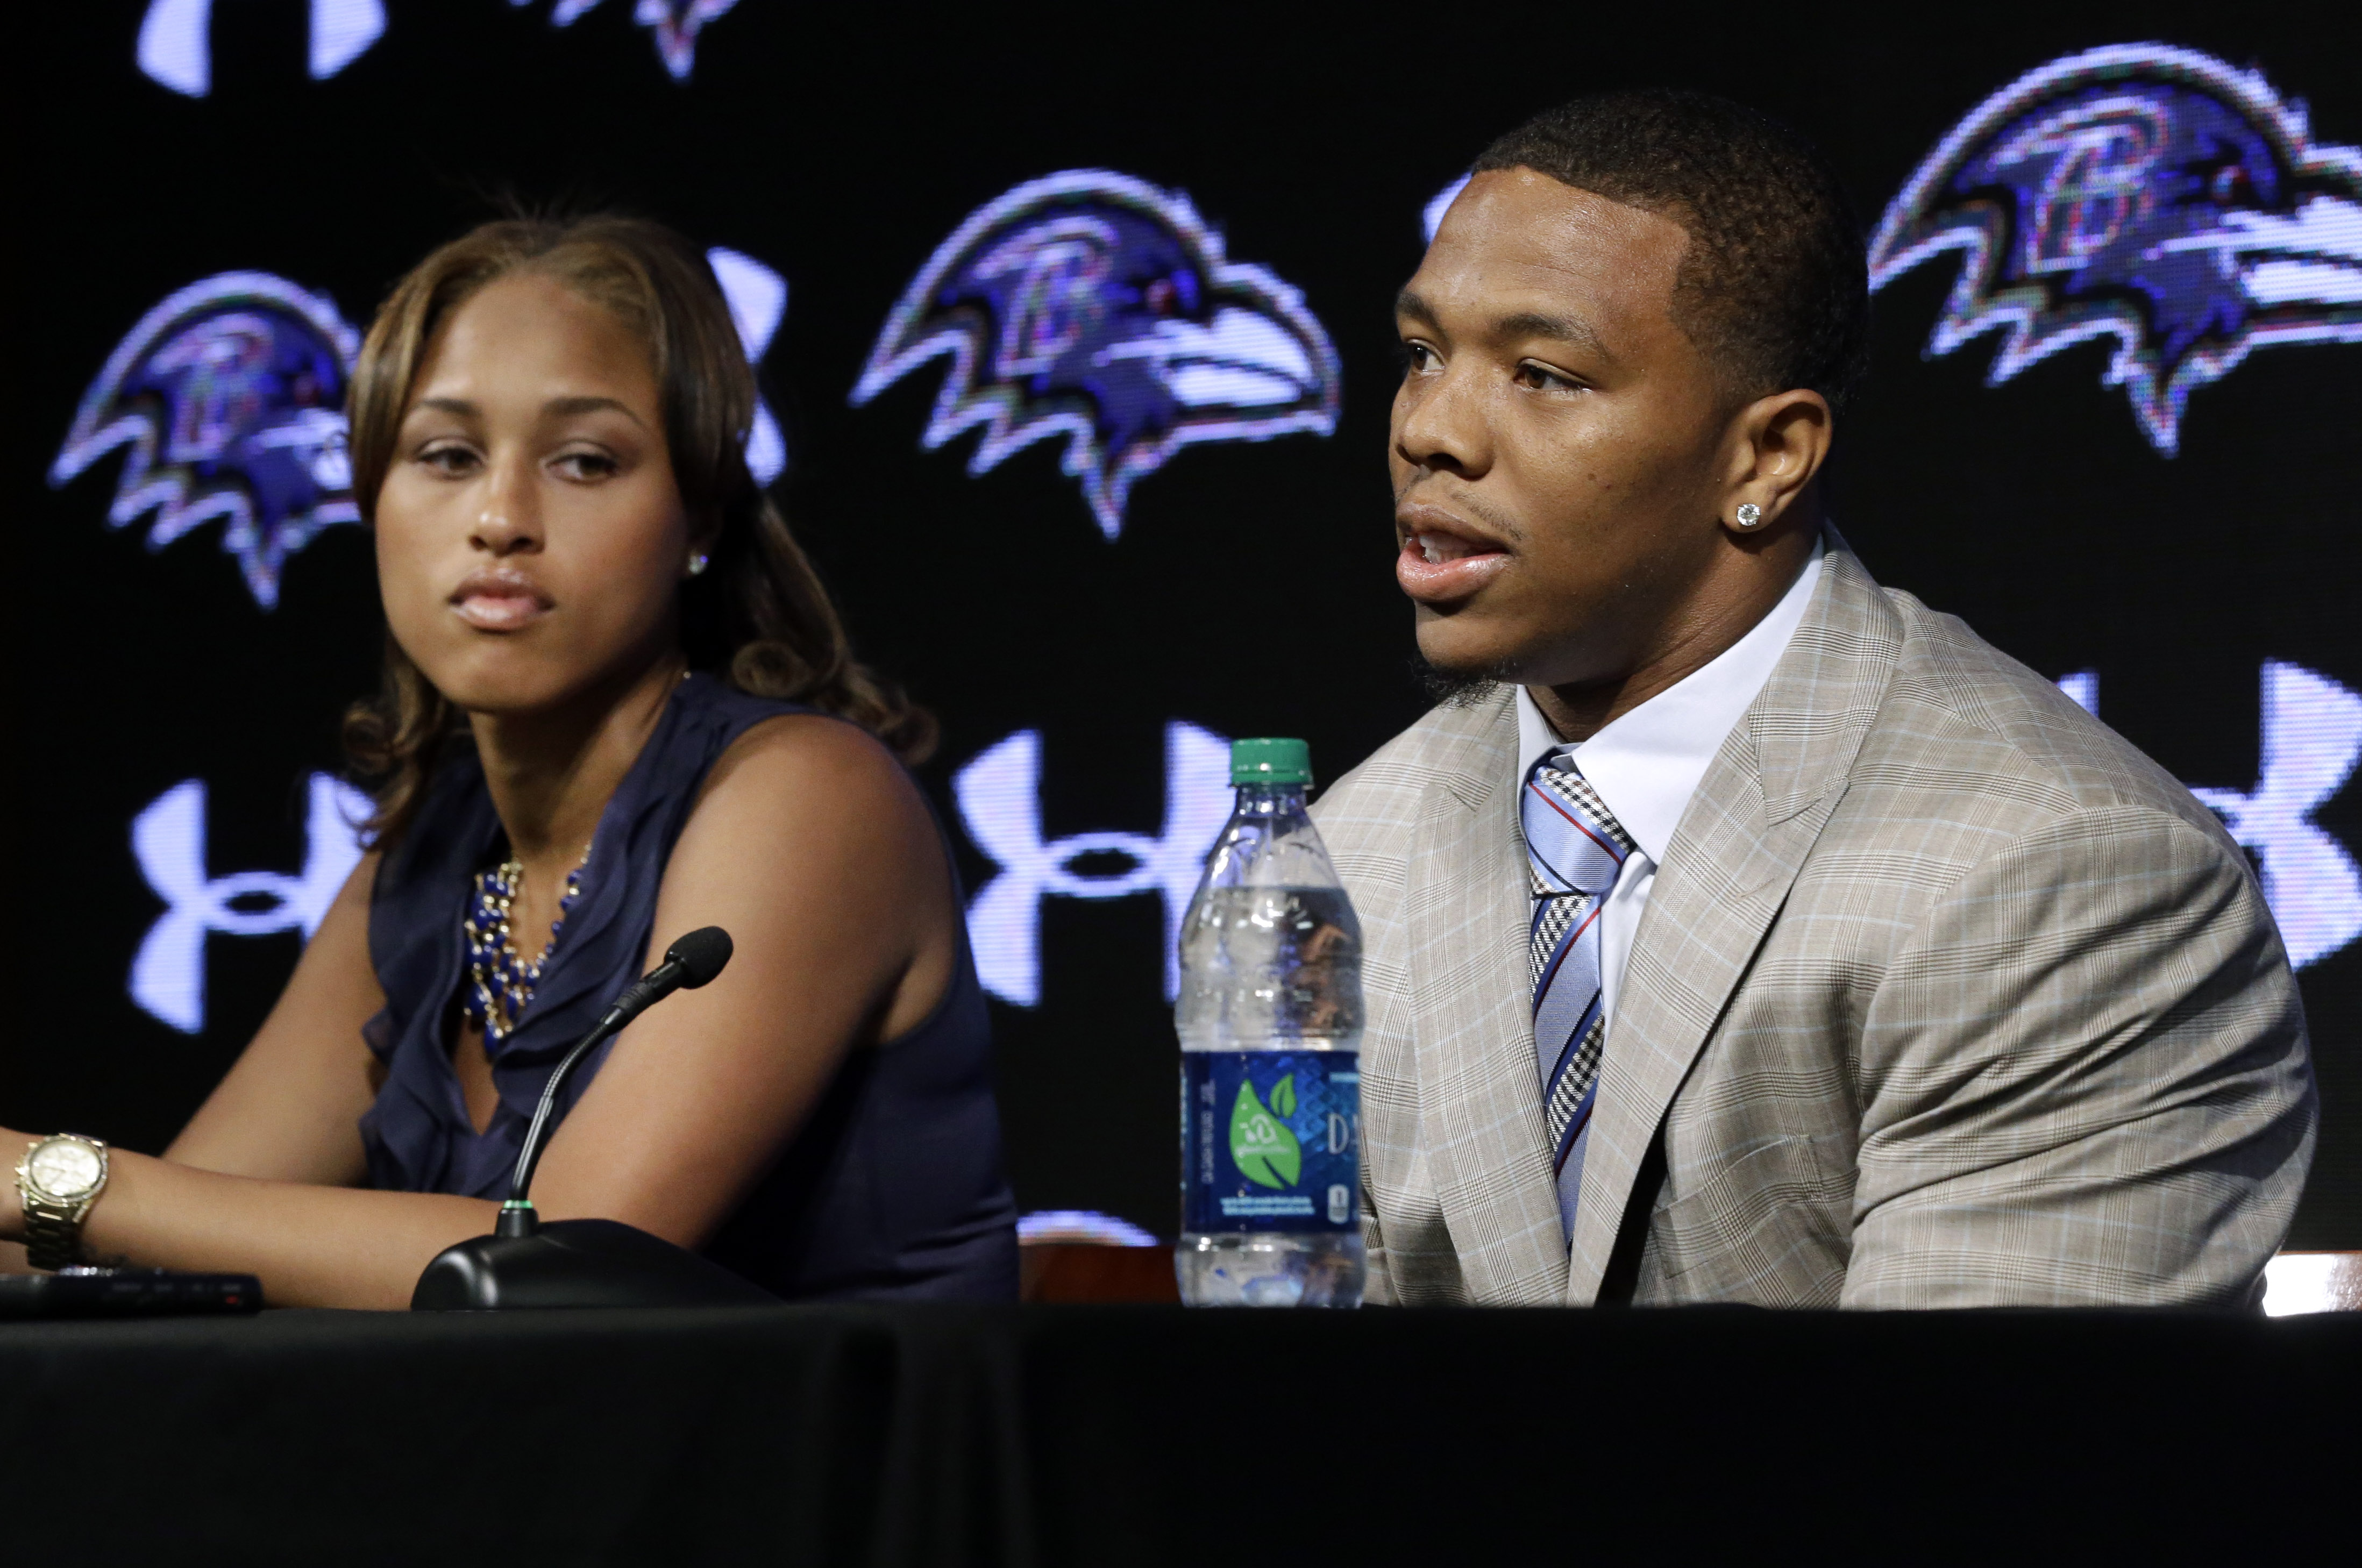 Domestic violence victims respond to Ray Rice video on Twitter with #WhyIStayed and #WhyILeft